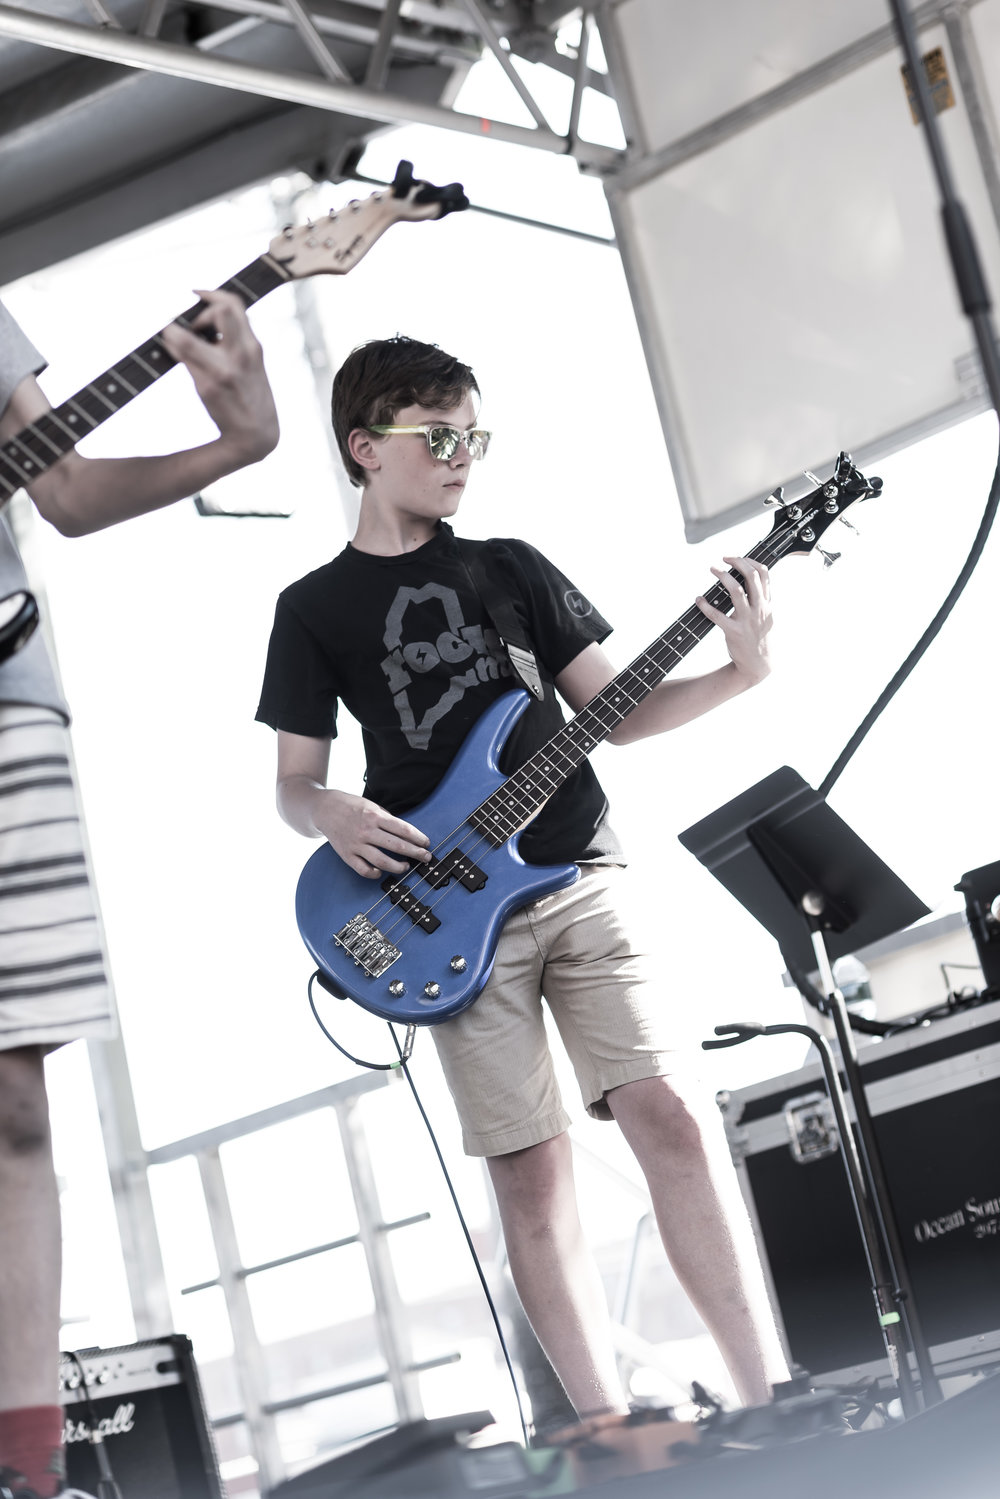 PORTLAND CAMPS: - June 24 - July 5 - Junior Rock CampJuly 8 - 19 - Ultimate Rock CampJuly 22 - Aug 2 - Songwriting & Recording CampAugust 5 - 9 - Girls Rock CampAugust 5 - 9 - Covers CampAugust 5 - 9 - Strings CampAugust 12 - 23 - Junior Rock CampAugust 26 - 30 - Covers Camp